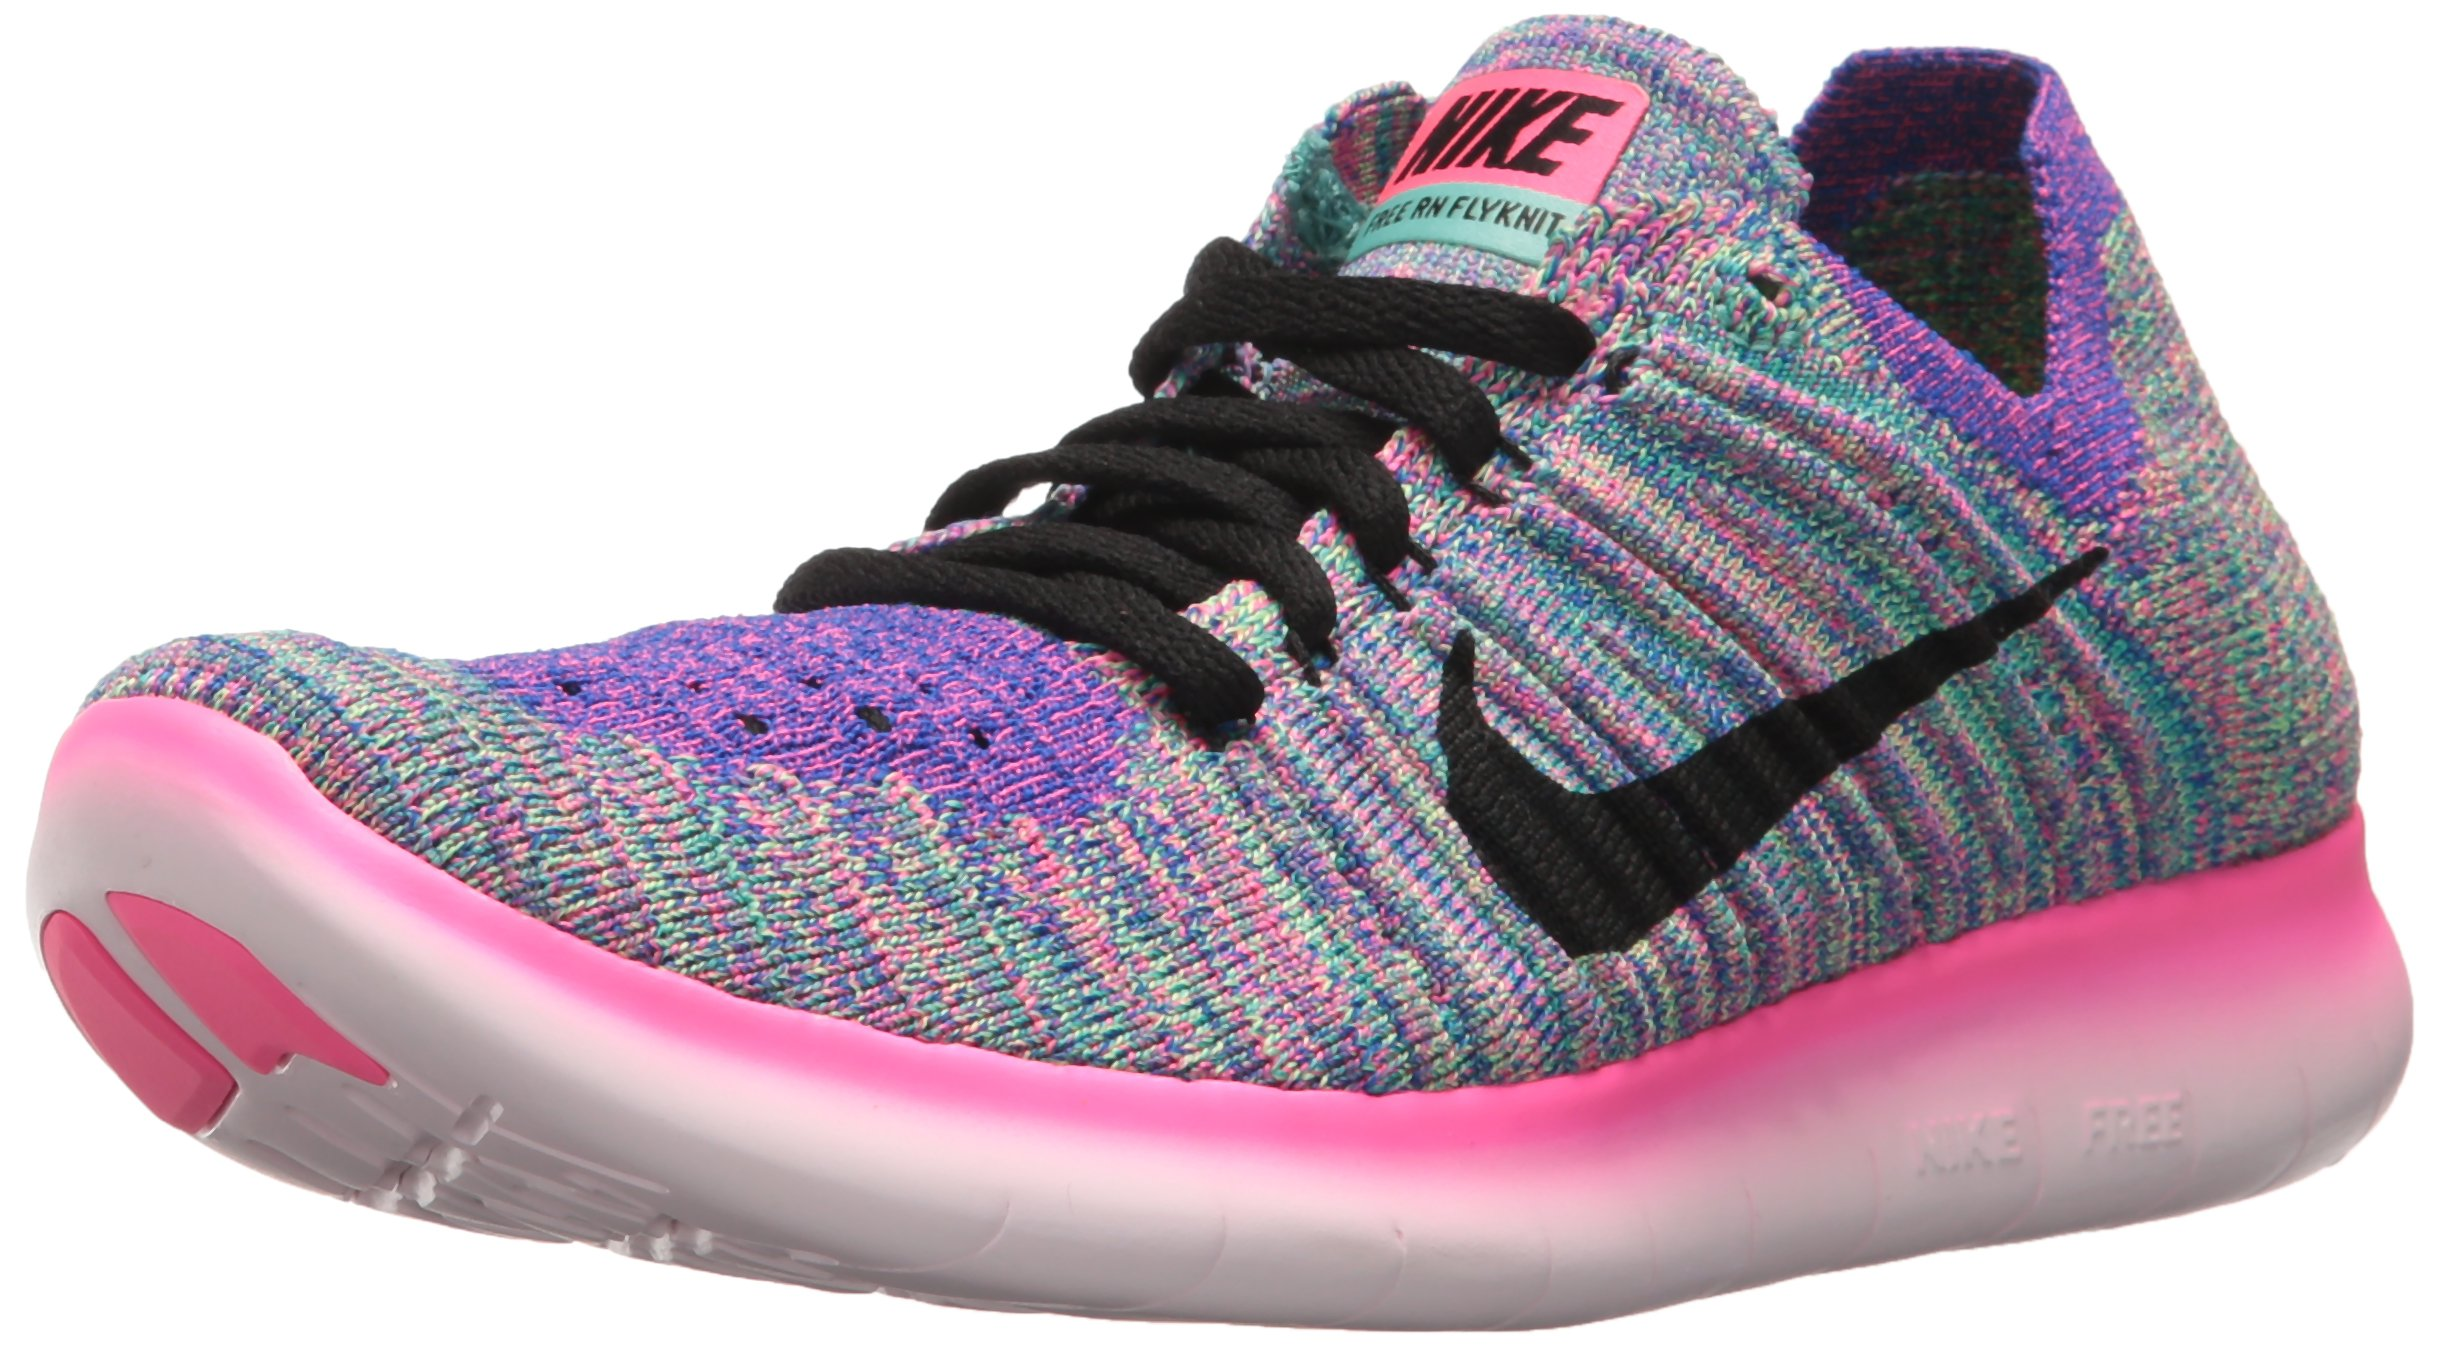 Nike Women's Free Running Motion Flyknit Shoes, Purple black And pink. - 7.5 B(M) US by NIKE